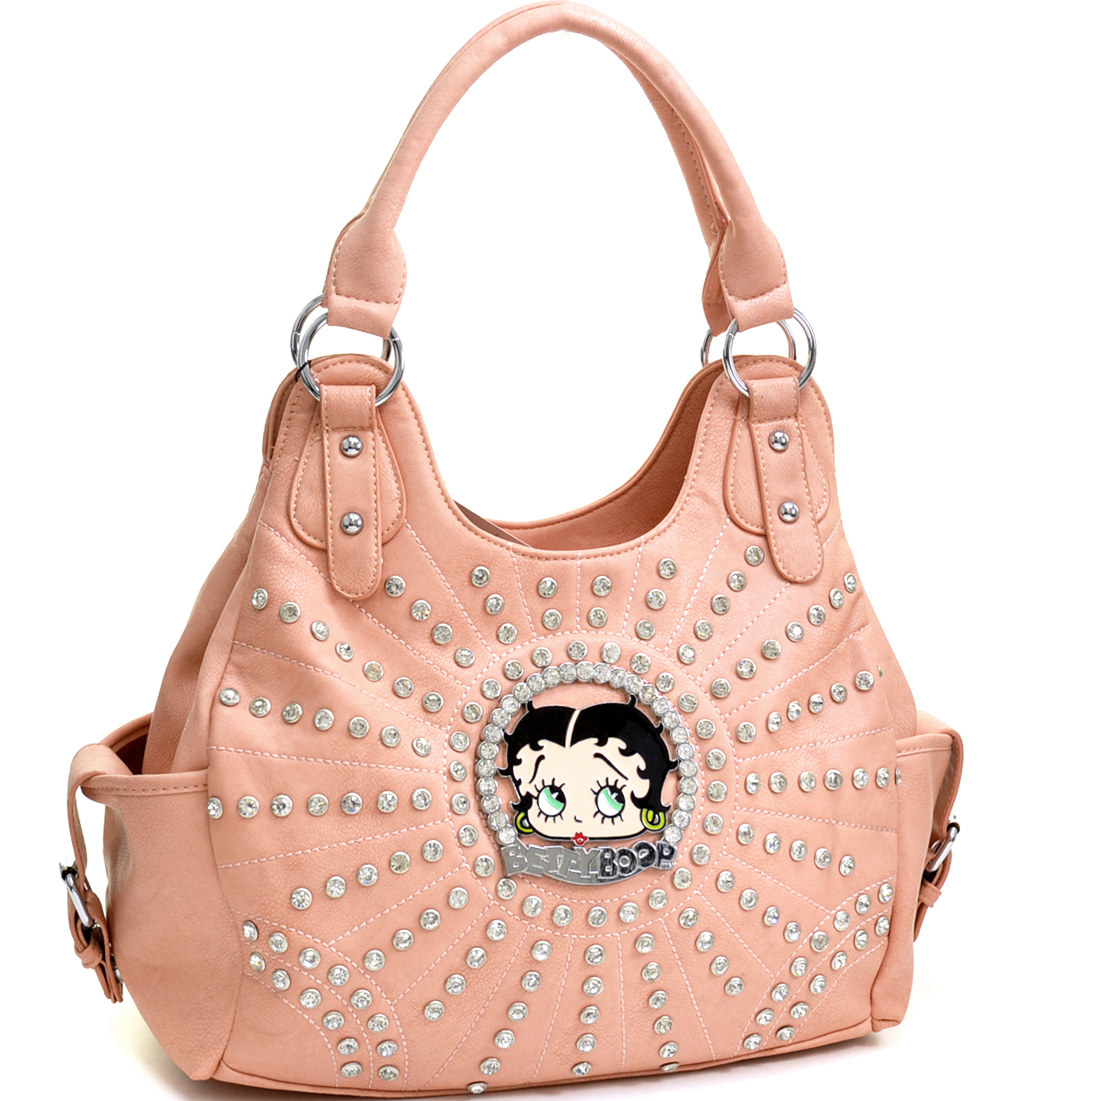 Betty Boop Betty Boop Rhinestone and Multi-Studded Shoulder Bag